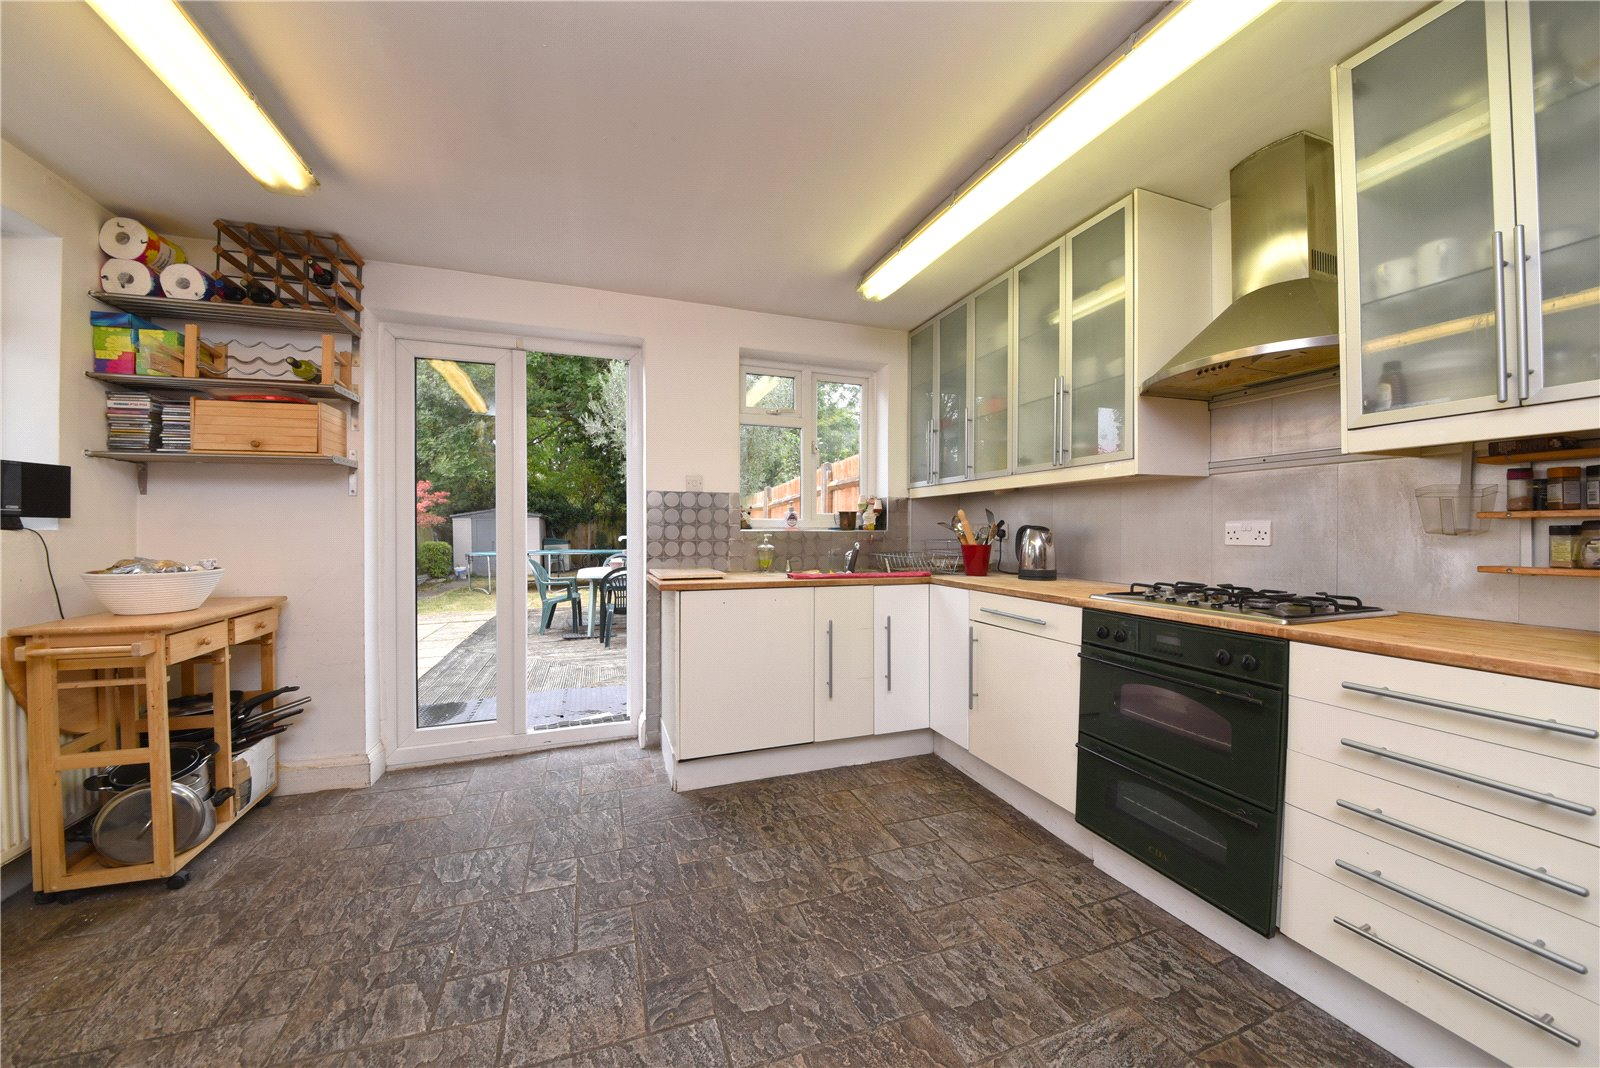 4 bed house for sale in Mill Hill East, NW7 1ND  - Property Image 1